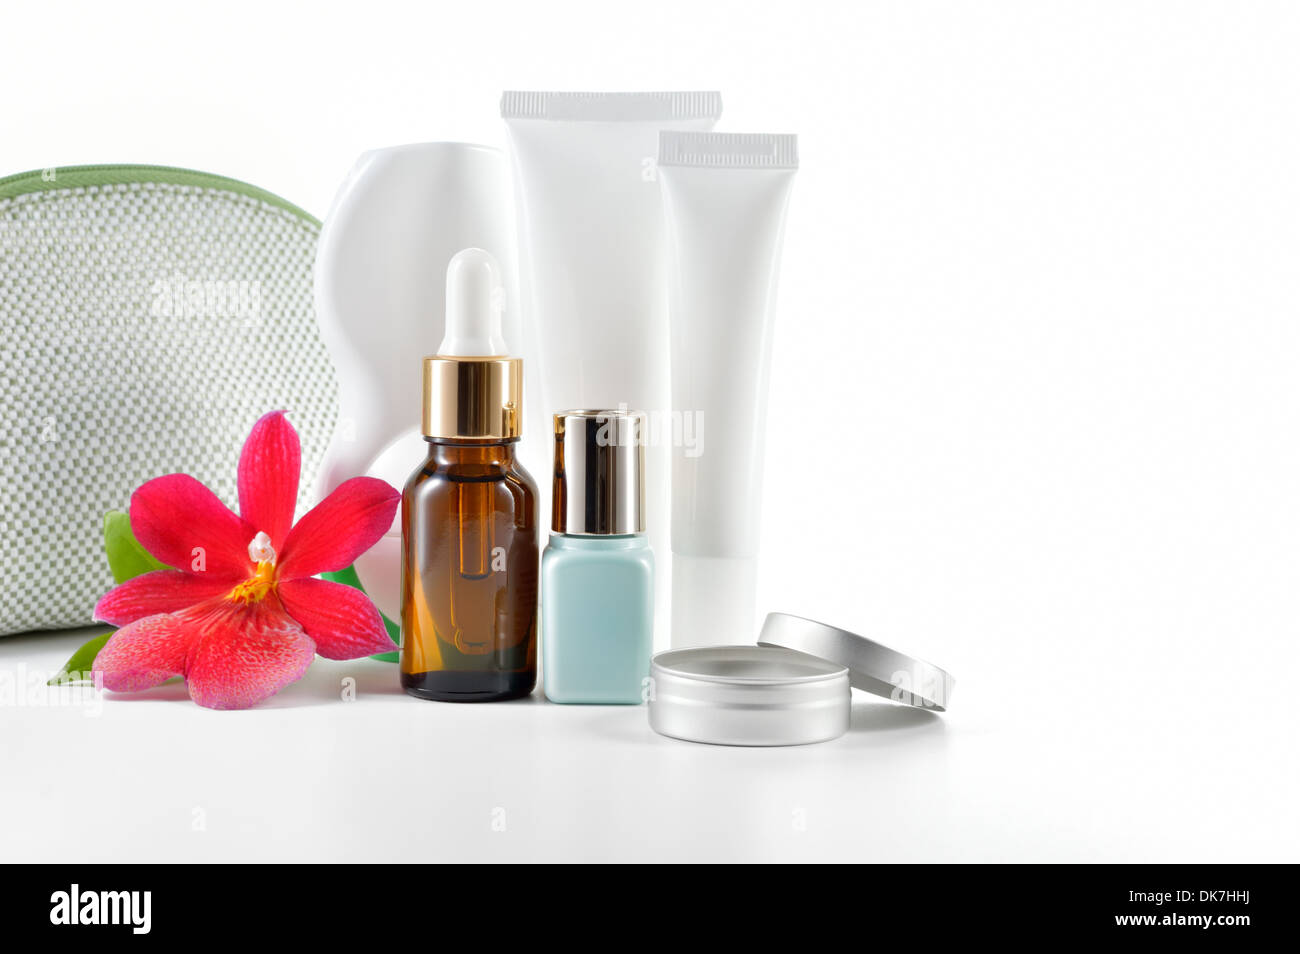 Daily, beauty care cosmetic isolated on white background. Face cream, eye cream, serum and lip balm. Skin care. - Stock Image